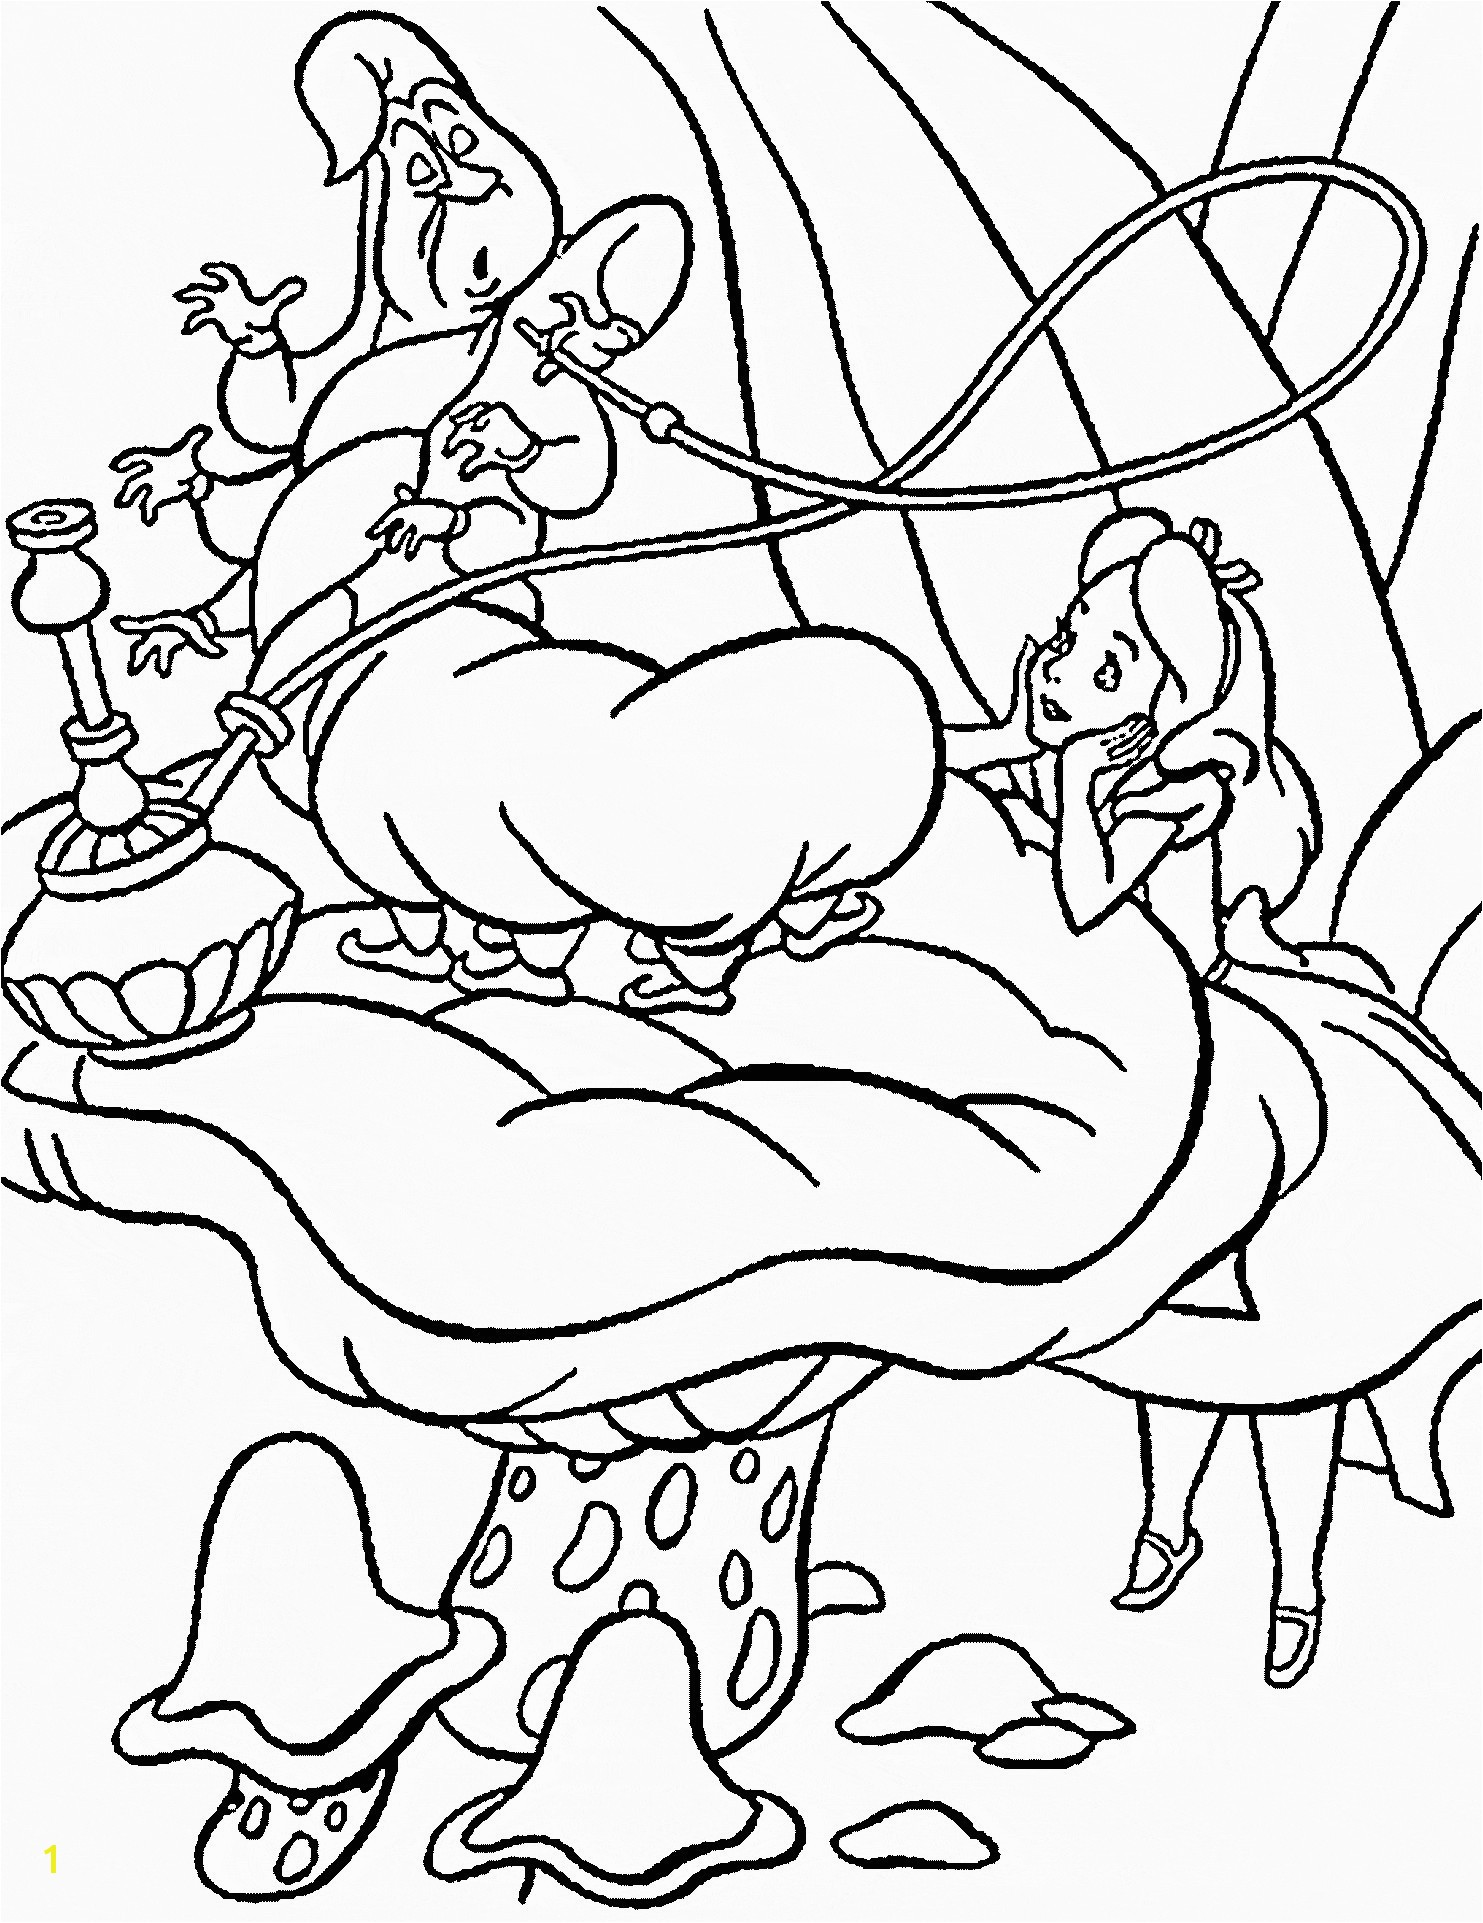 Alice In Wonder Land Coloring Pages Inspirational Alice In Wonderland Coloring Books Valid Alice In Wonderland